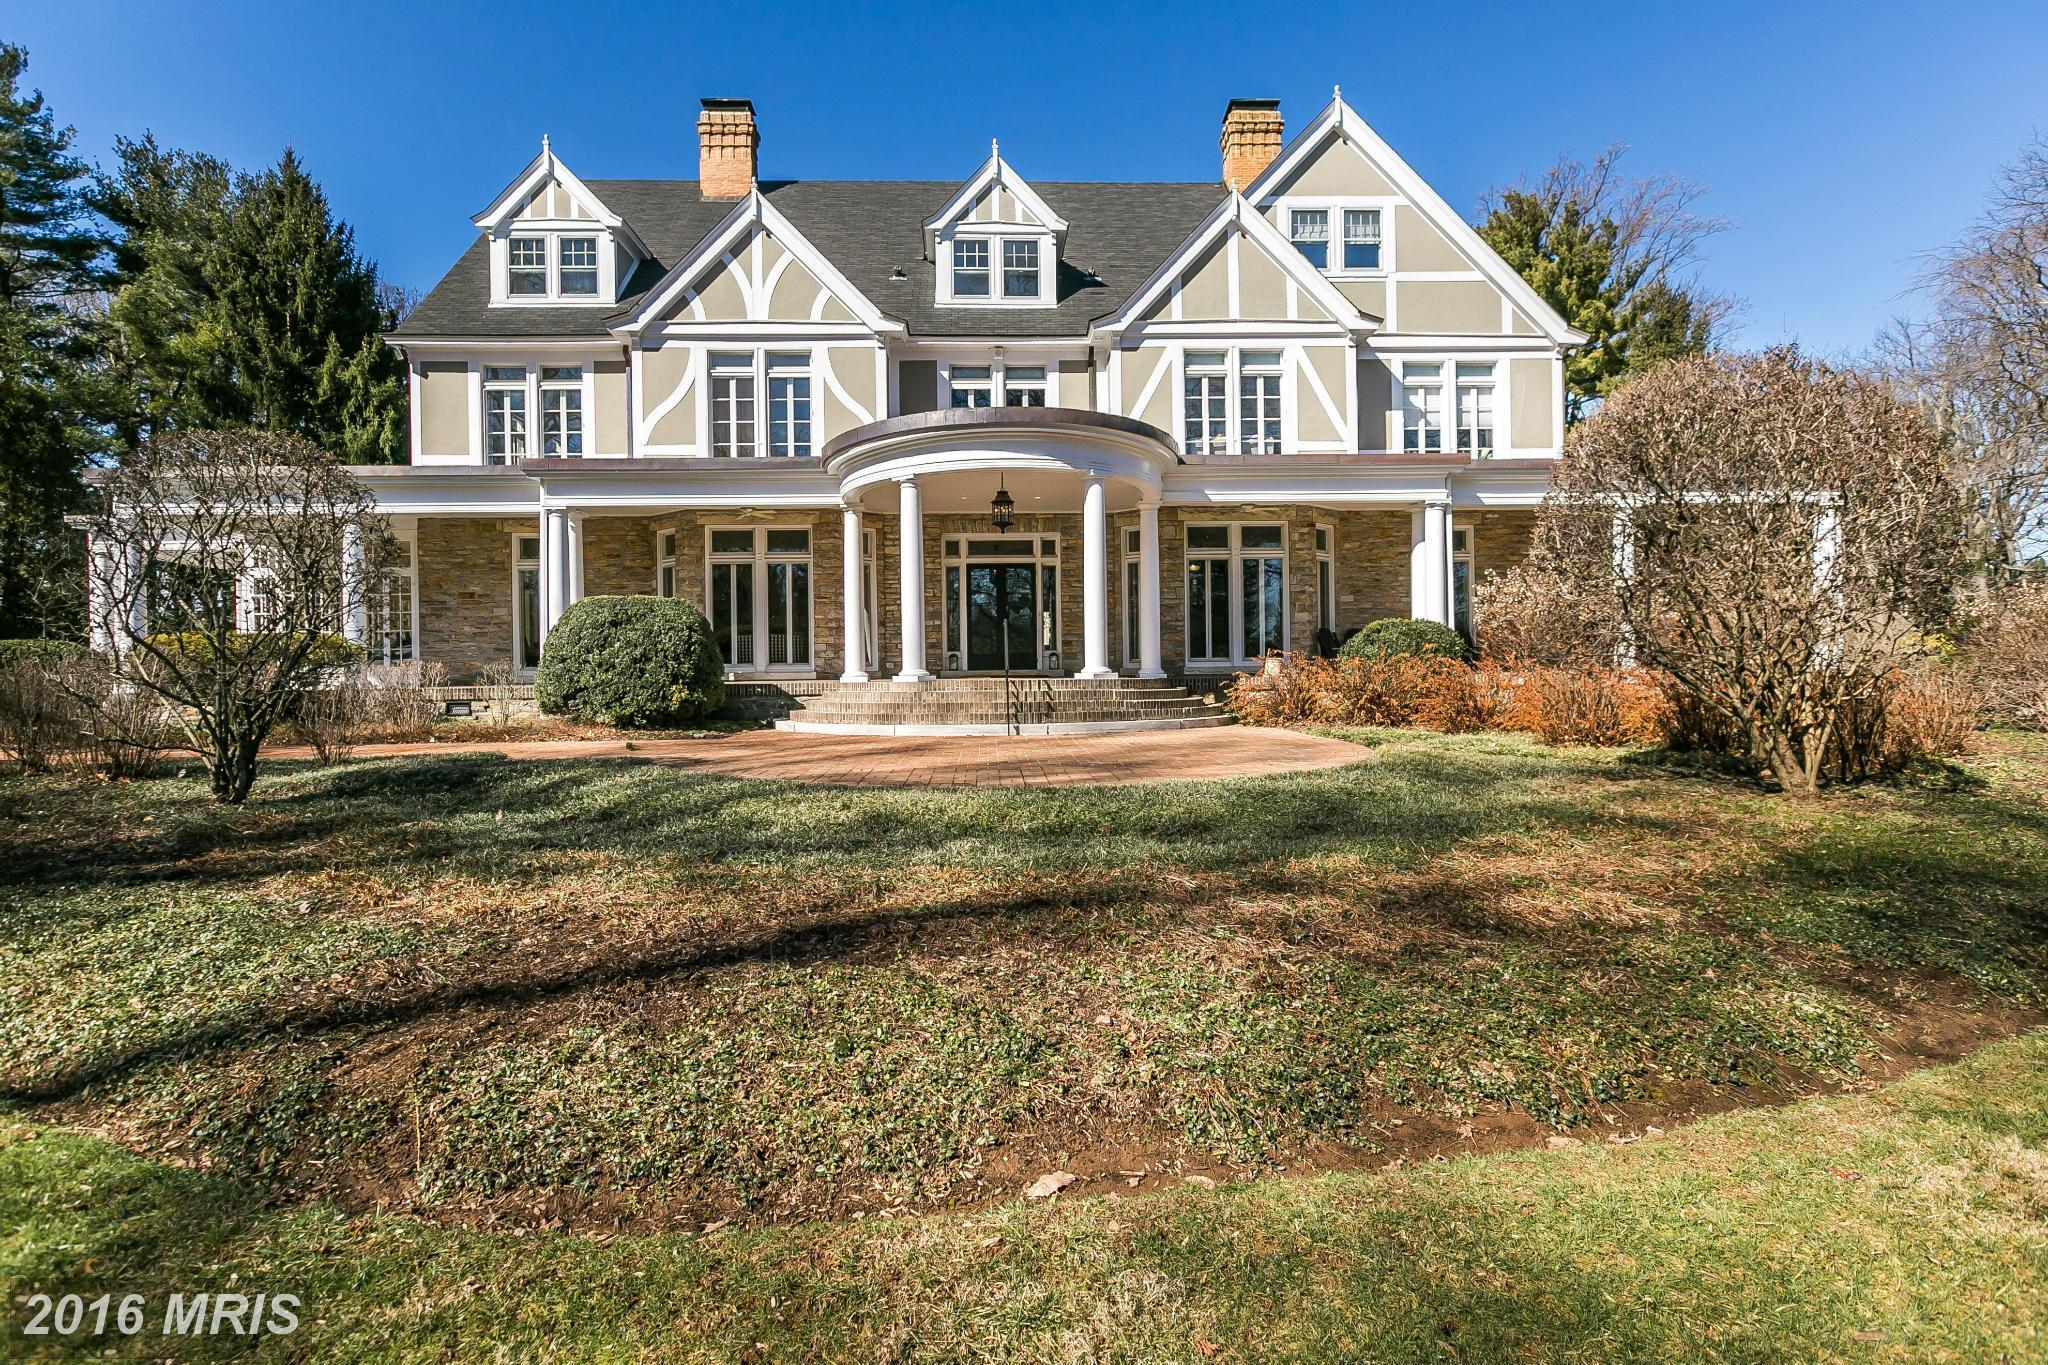 Top 10 Most Expensive Homes Sold In The Baltimore Area In